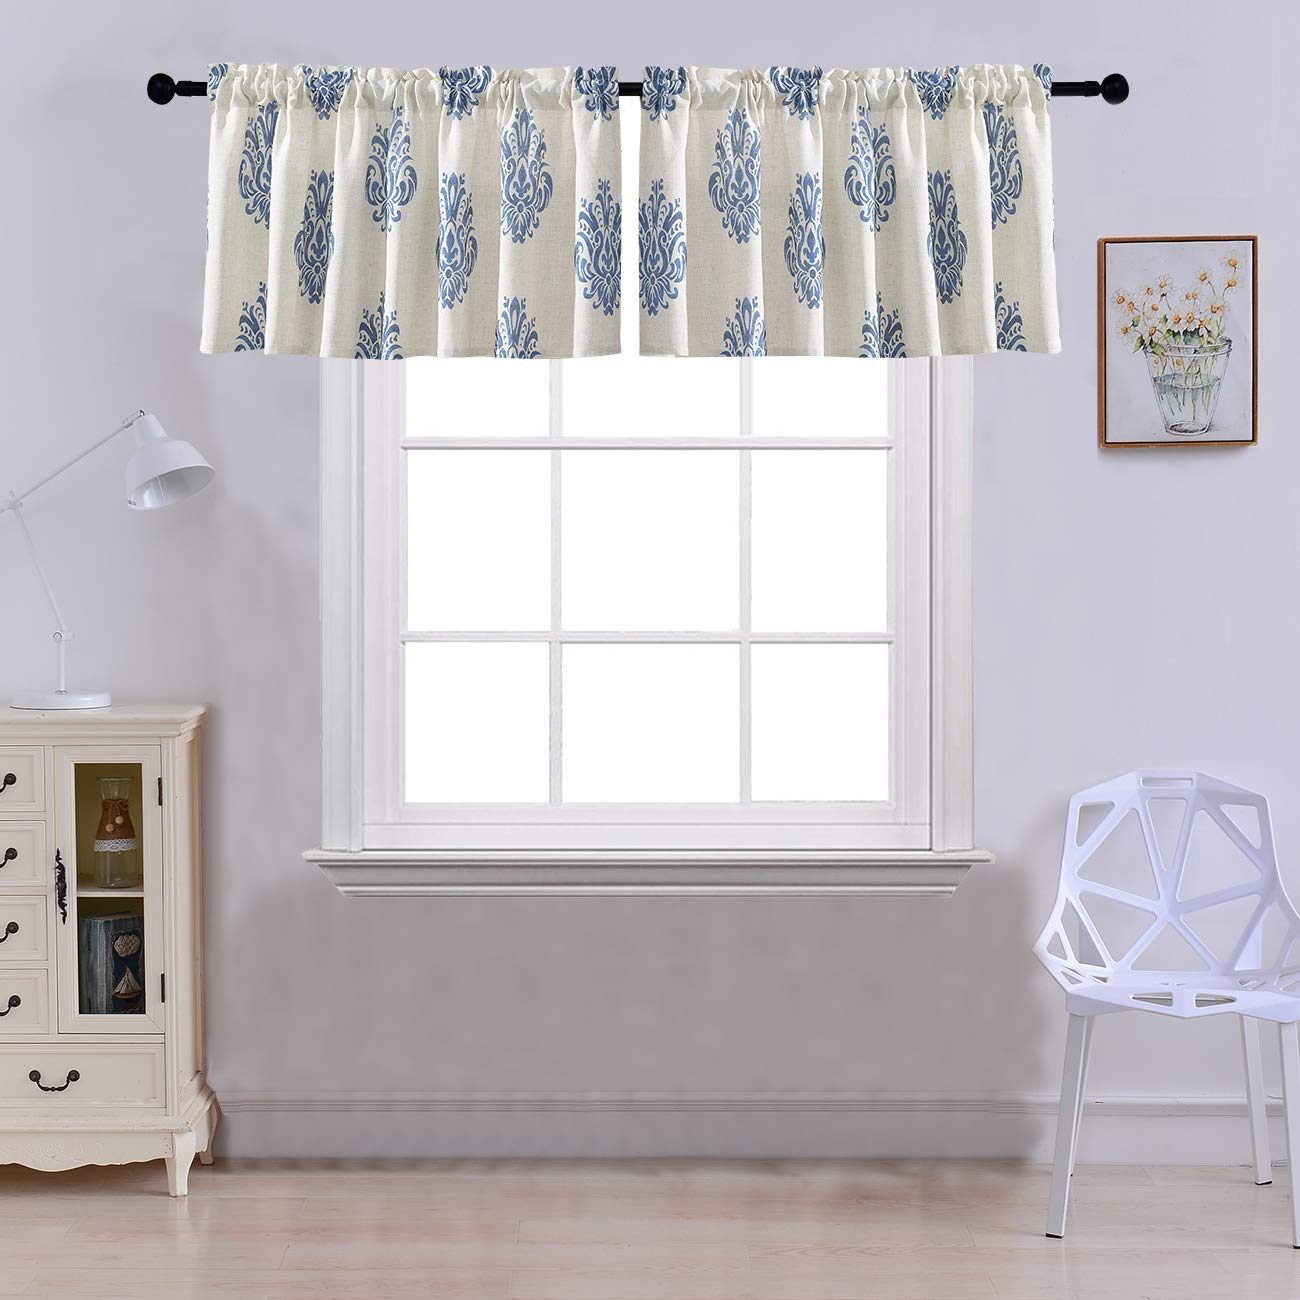 Curtain Valances for Windows Burlap Linen Print Window Curtains for Kitchen Living Dining Room 52 x 18 inches Rod Pocket Set of 2 Navy Blue